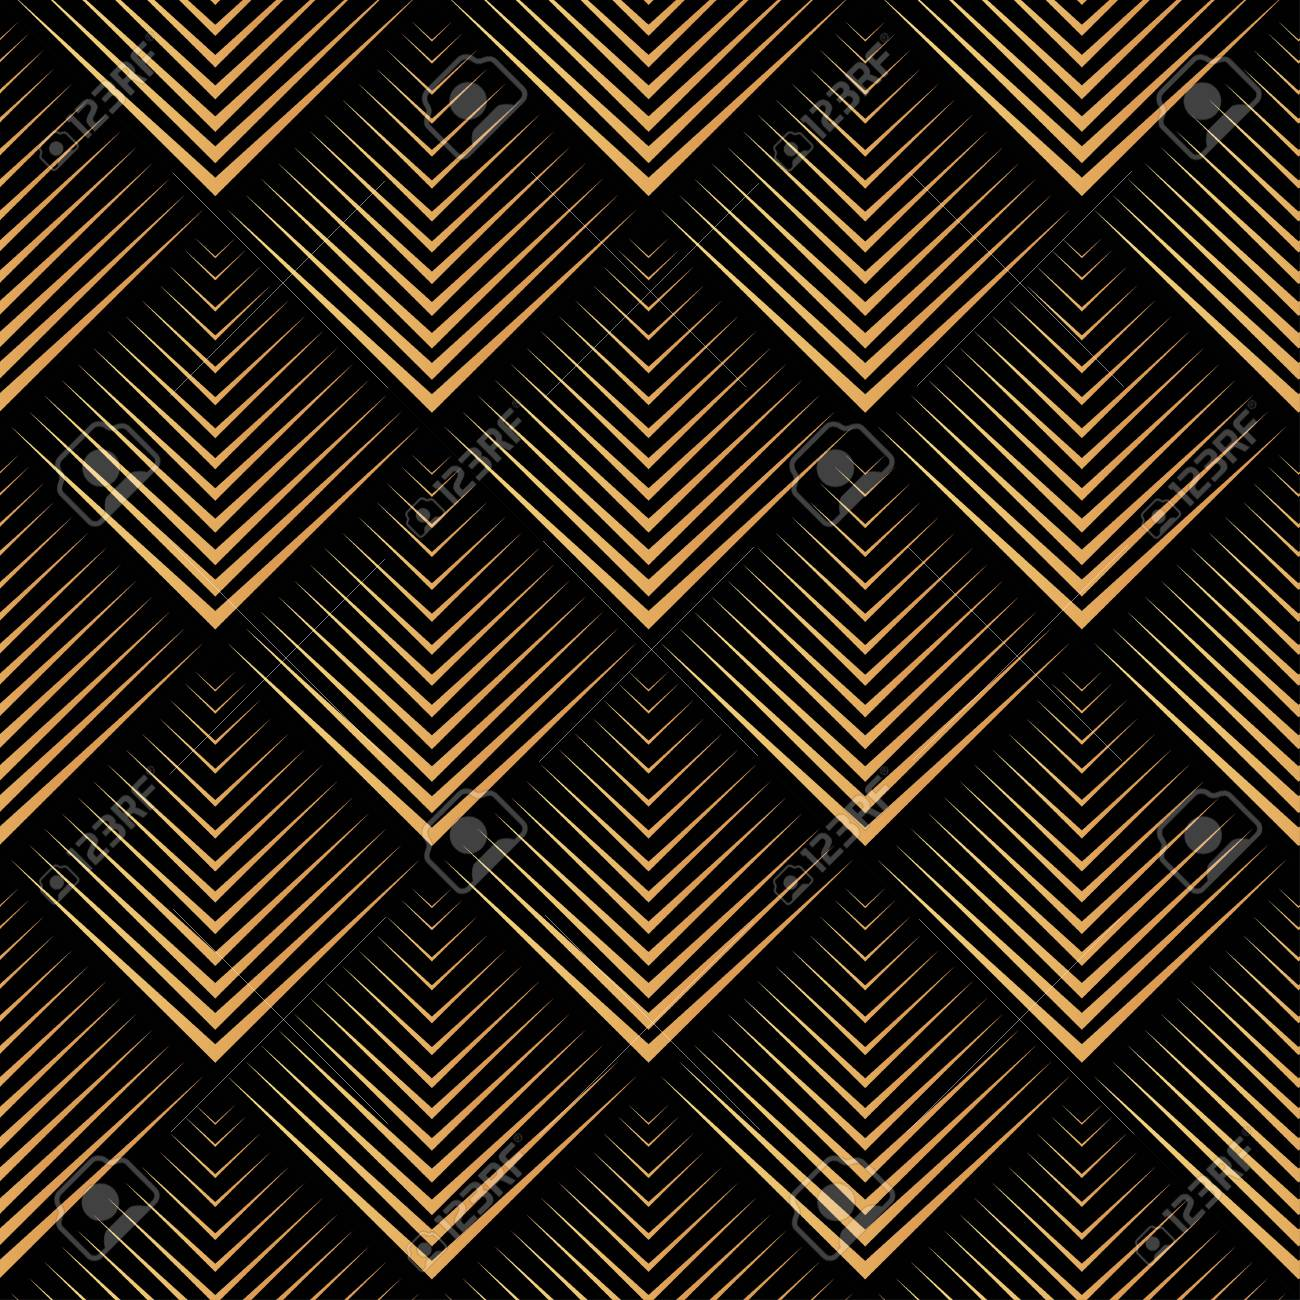 Art Deco, geometric, vector seamless pattern , gold on black